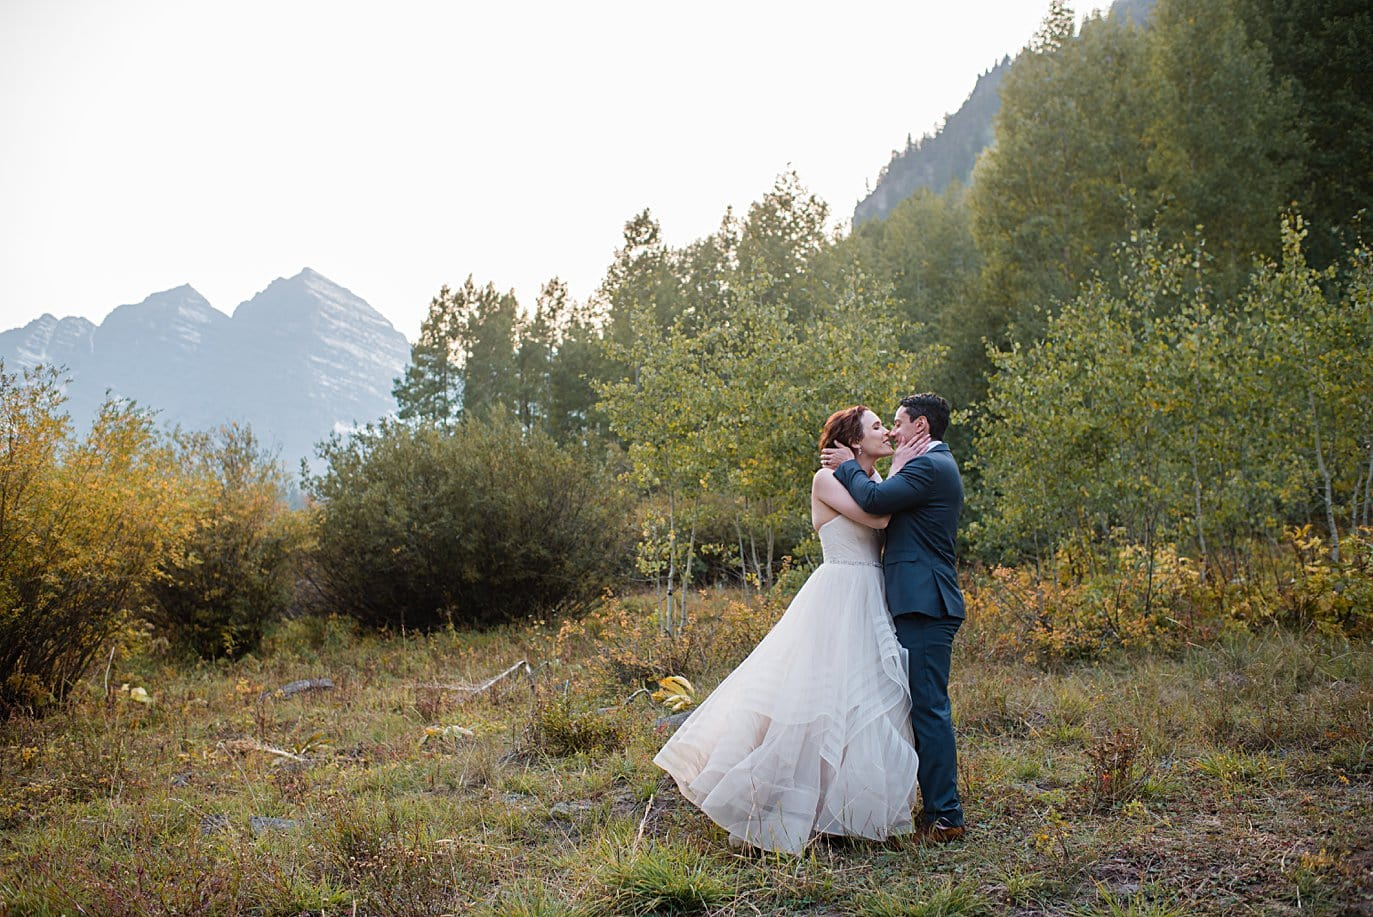 bride and groom kiss in front of Maroon Bells peaks in Aspen by Denver wedding photographer Jennie Crate